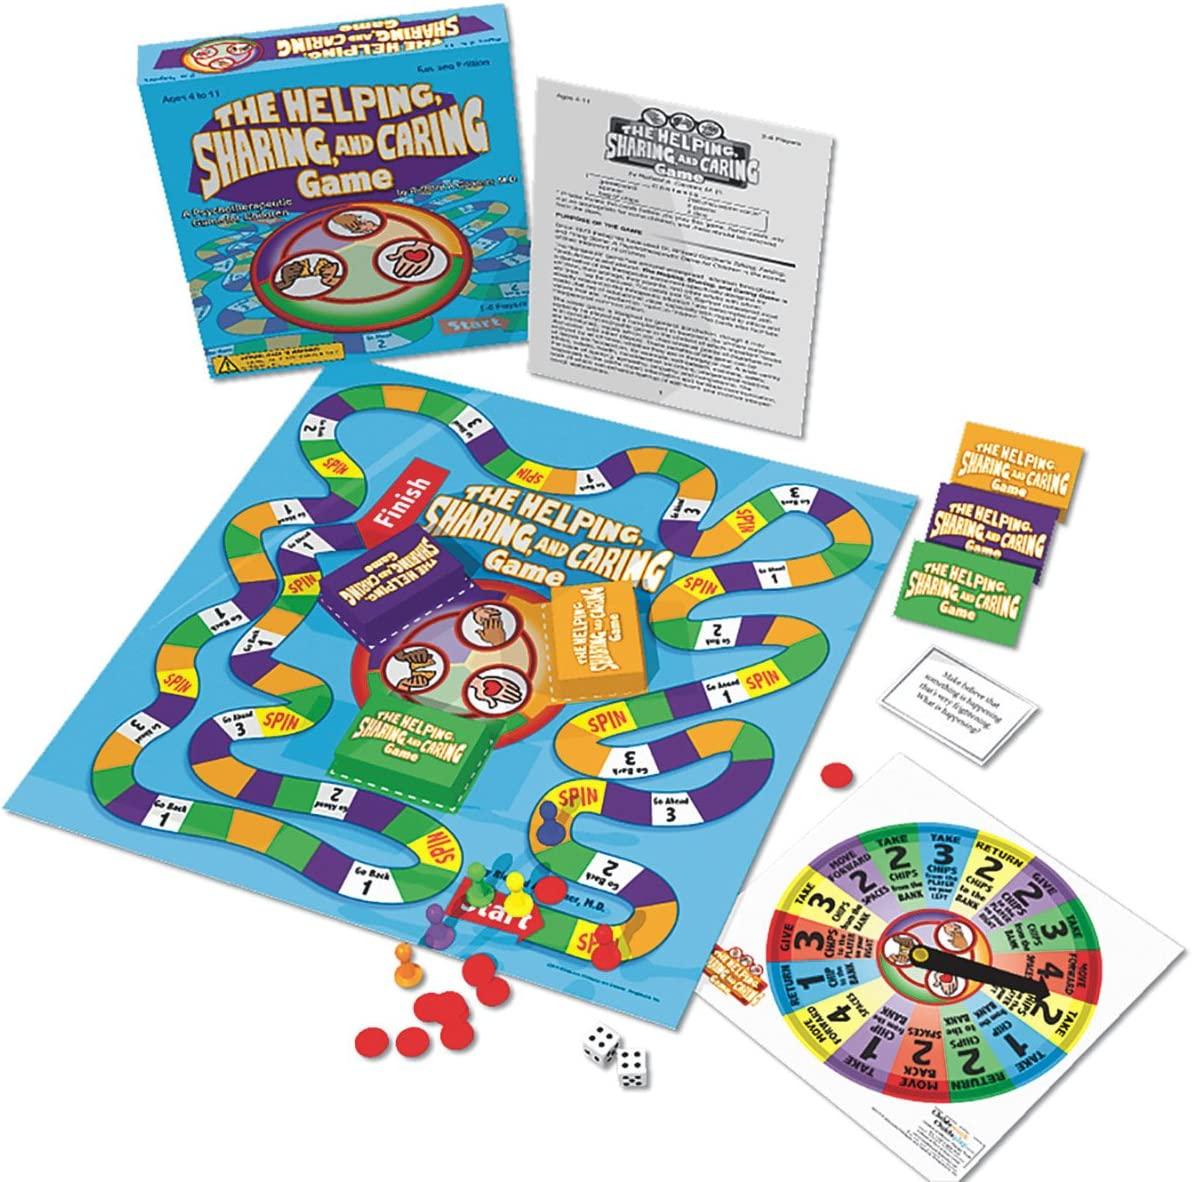 1882732154 Childswork / Childsplay The Helping, Sharing, and Caring Board Game 71gwTYh62sL